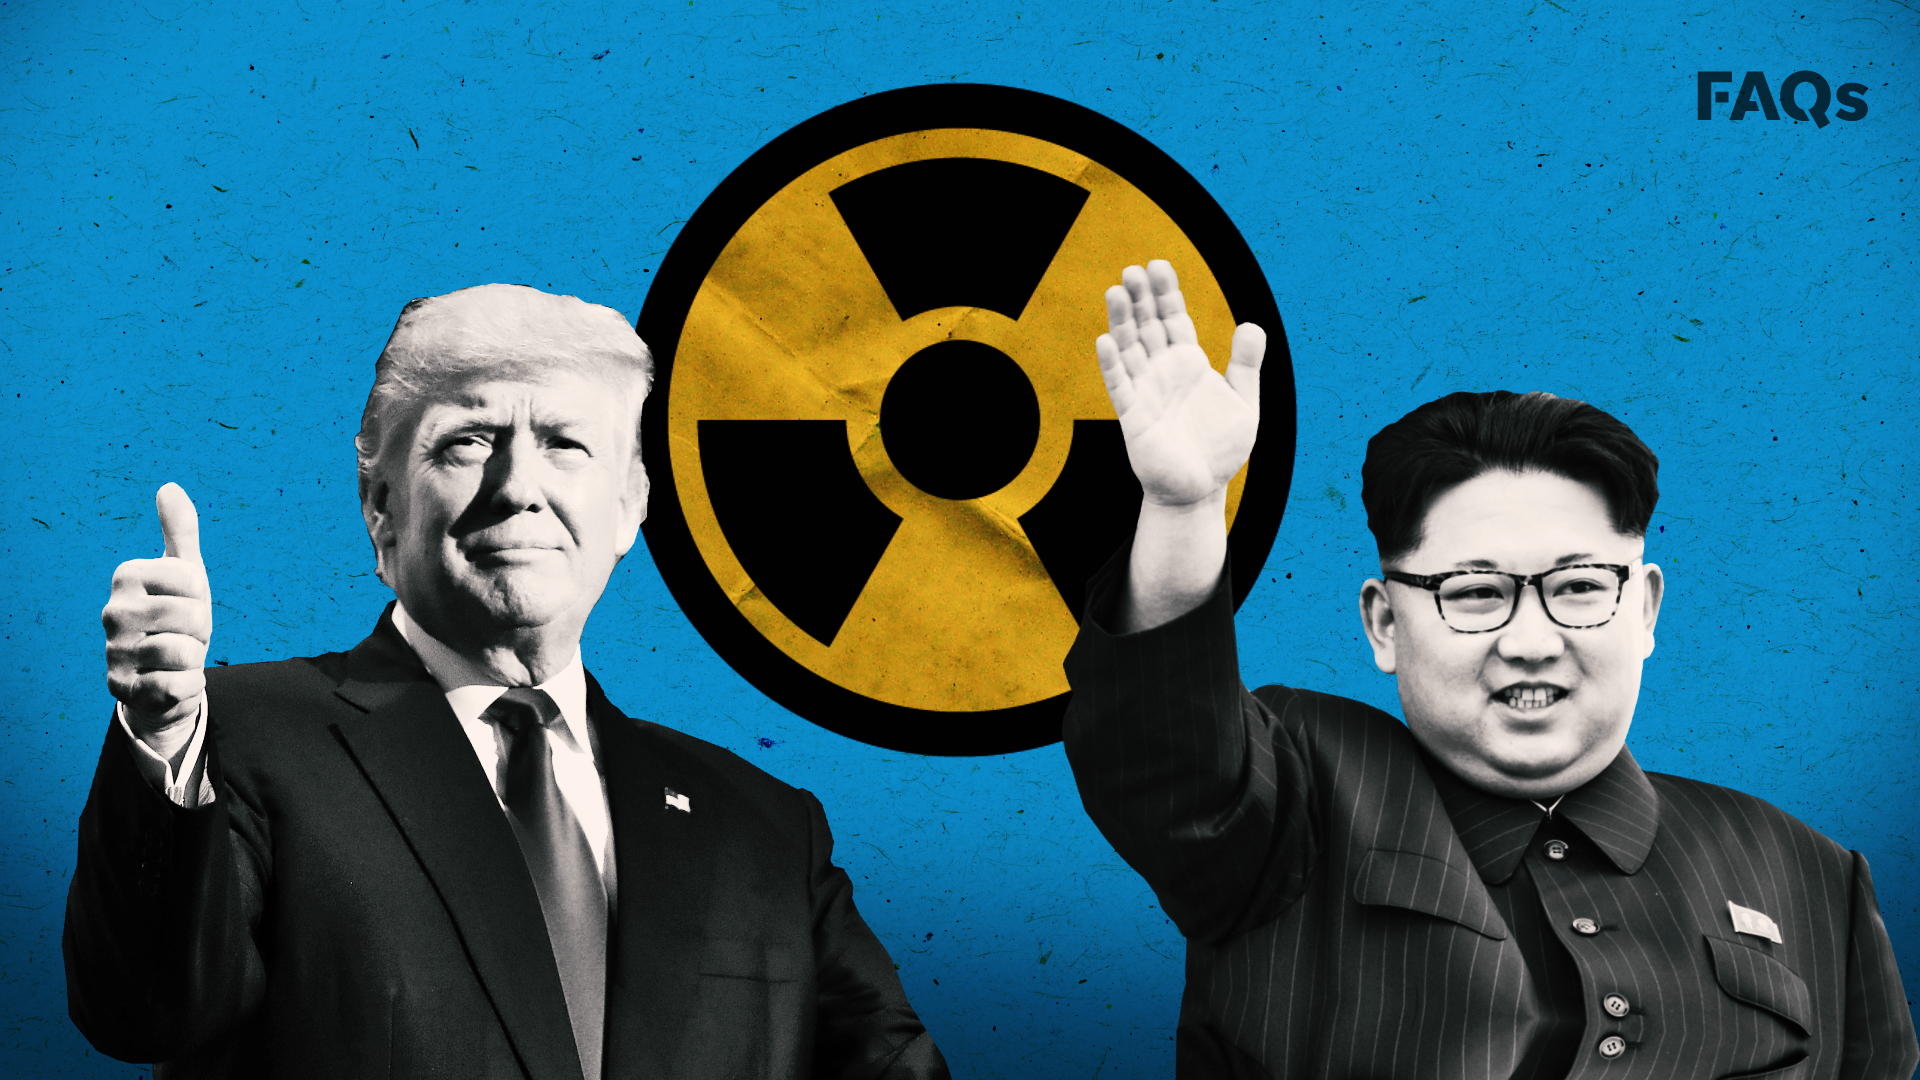 Has Kim Jong-Un broken Trump's promise on nuclear weapons